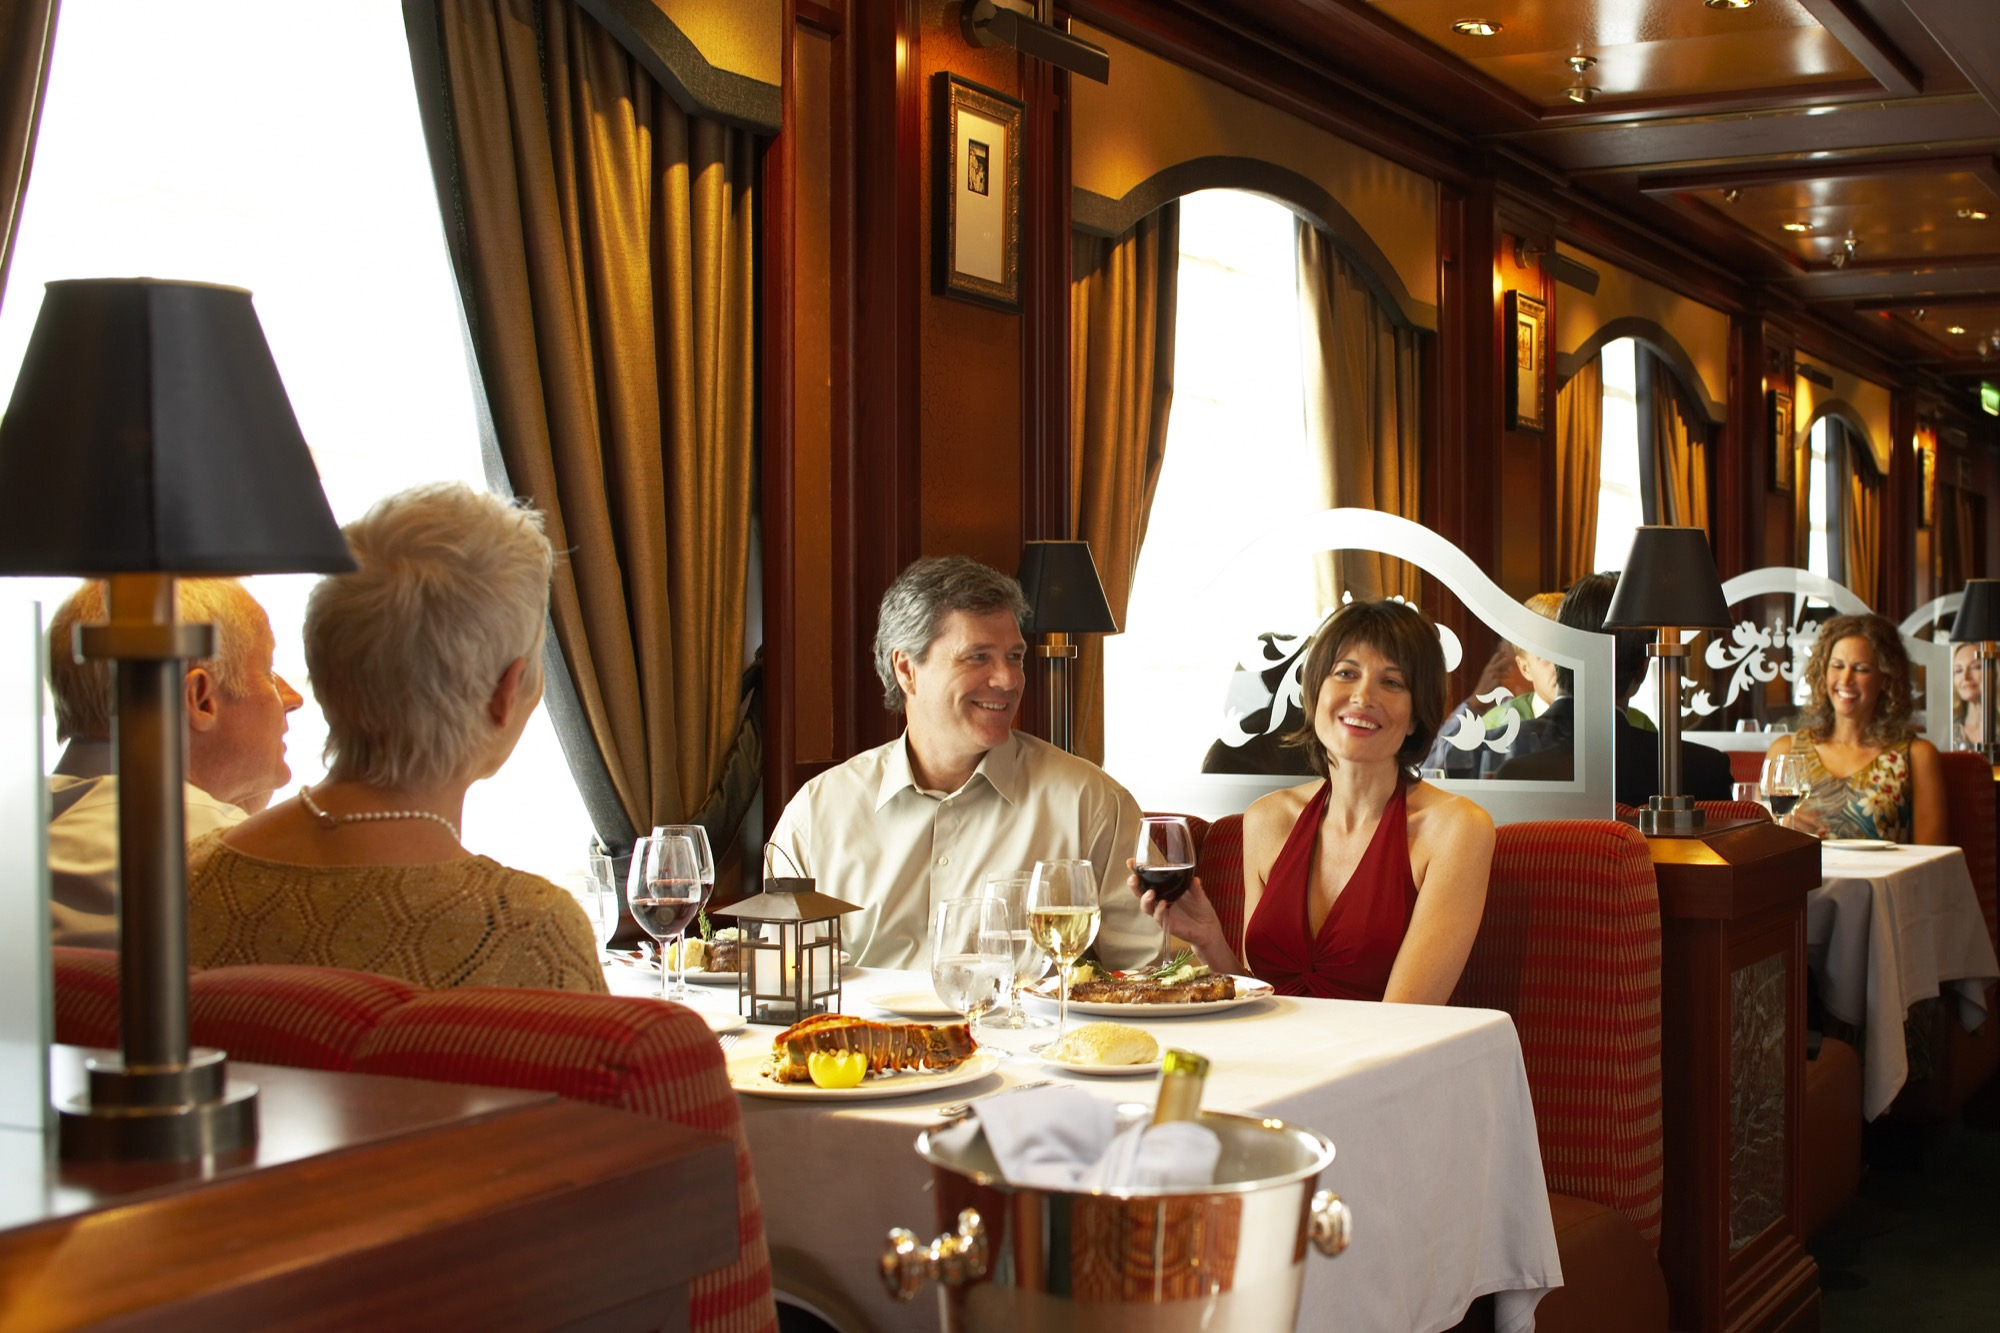 Princess Cruises Coral Class Interior crown grill 2.jpg